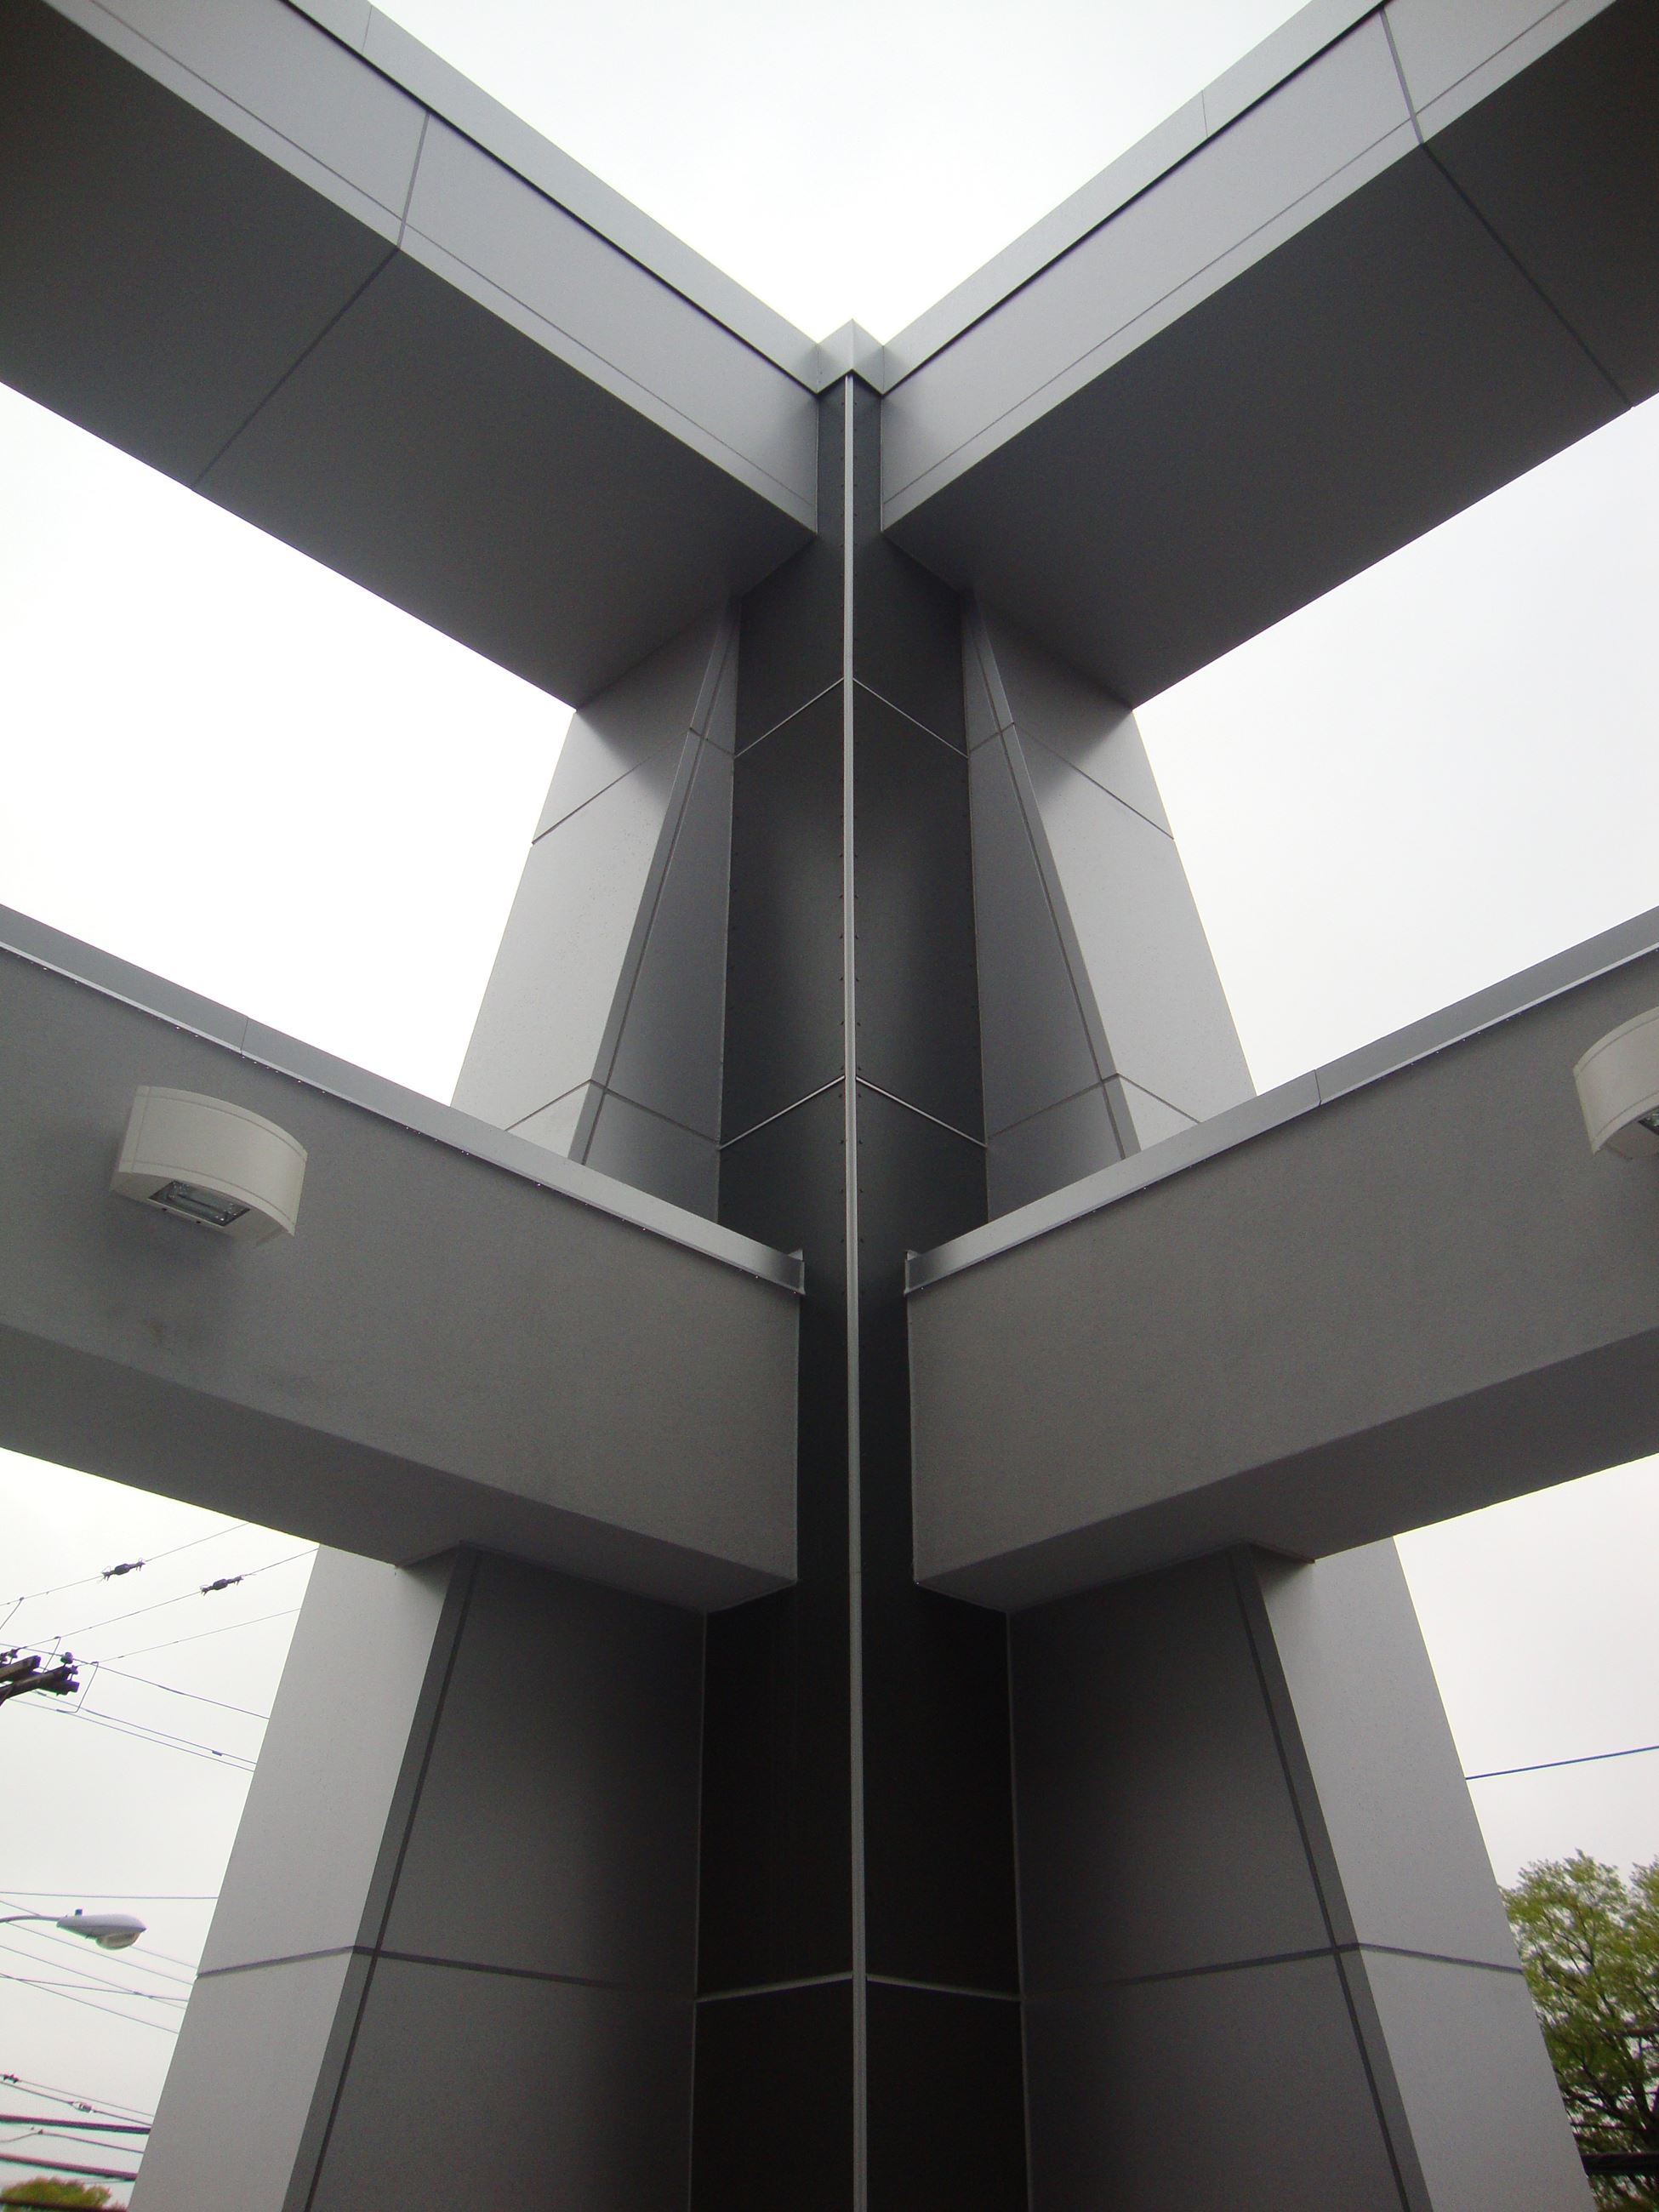 View from Below of Building Structure